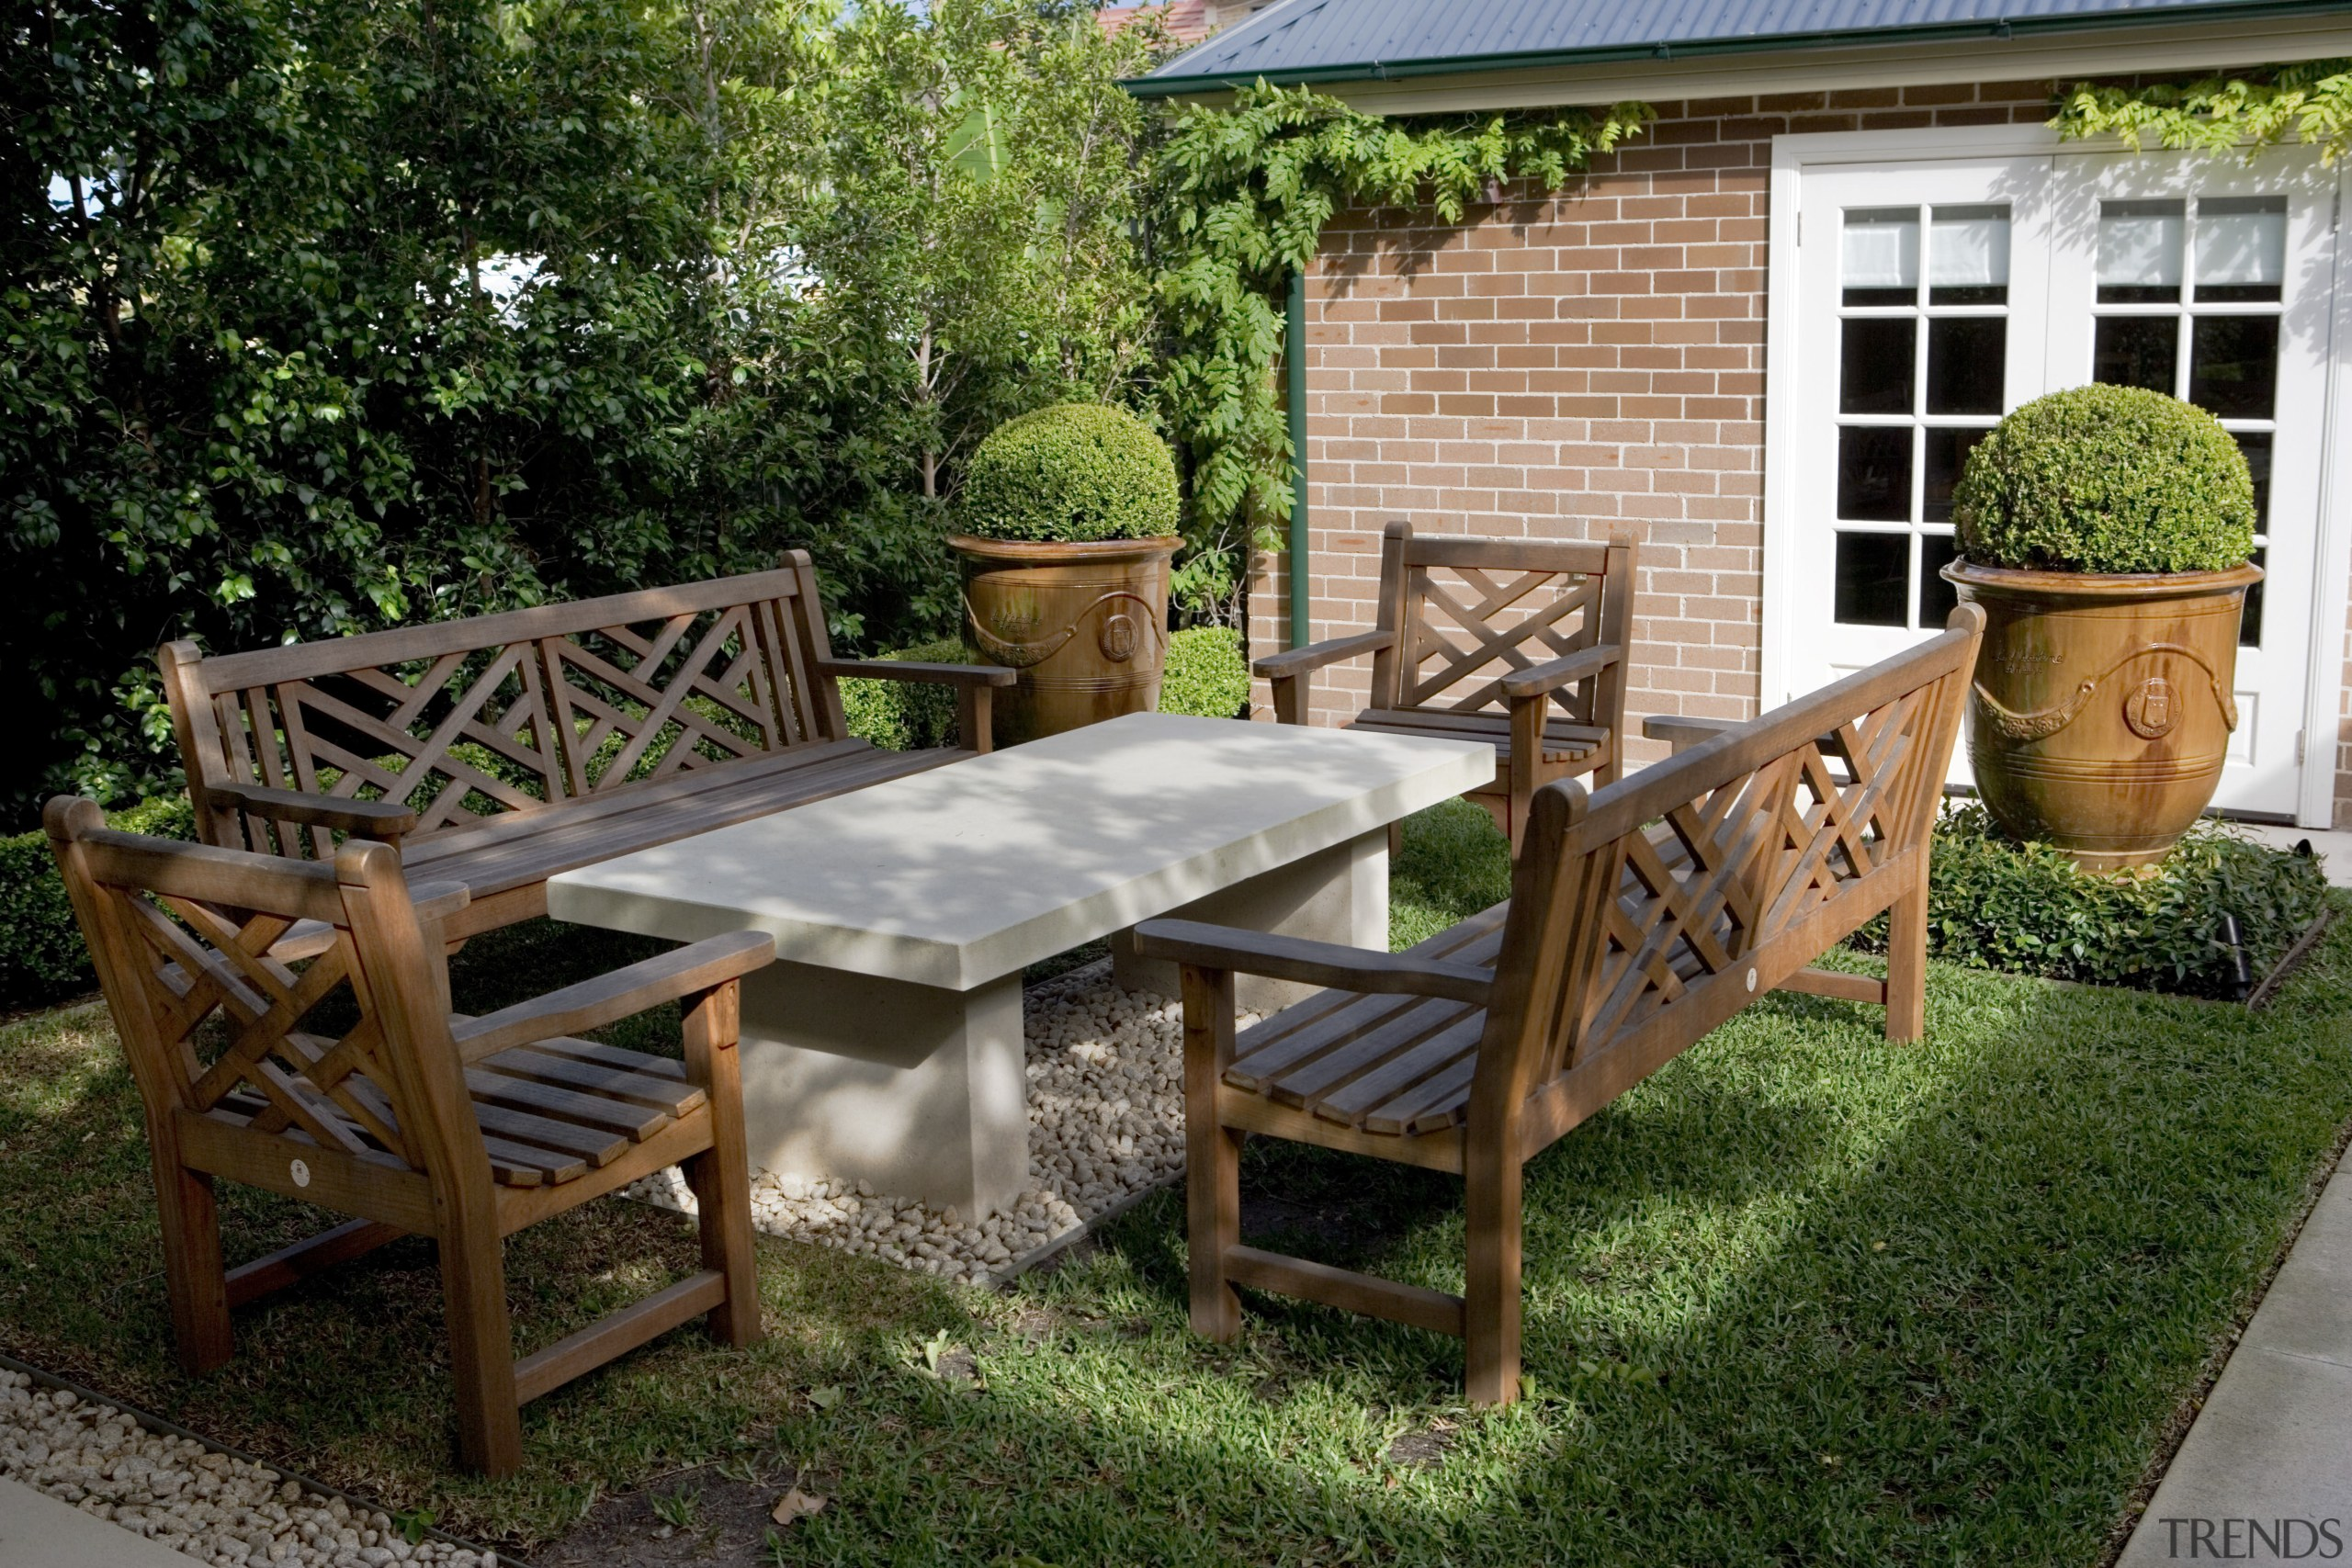 Seating is placed around the garden to provide backyard, chair, furniture, garden, outdoor furniture, outdoor structure, patio, plant, table, yard, brown